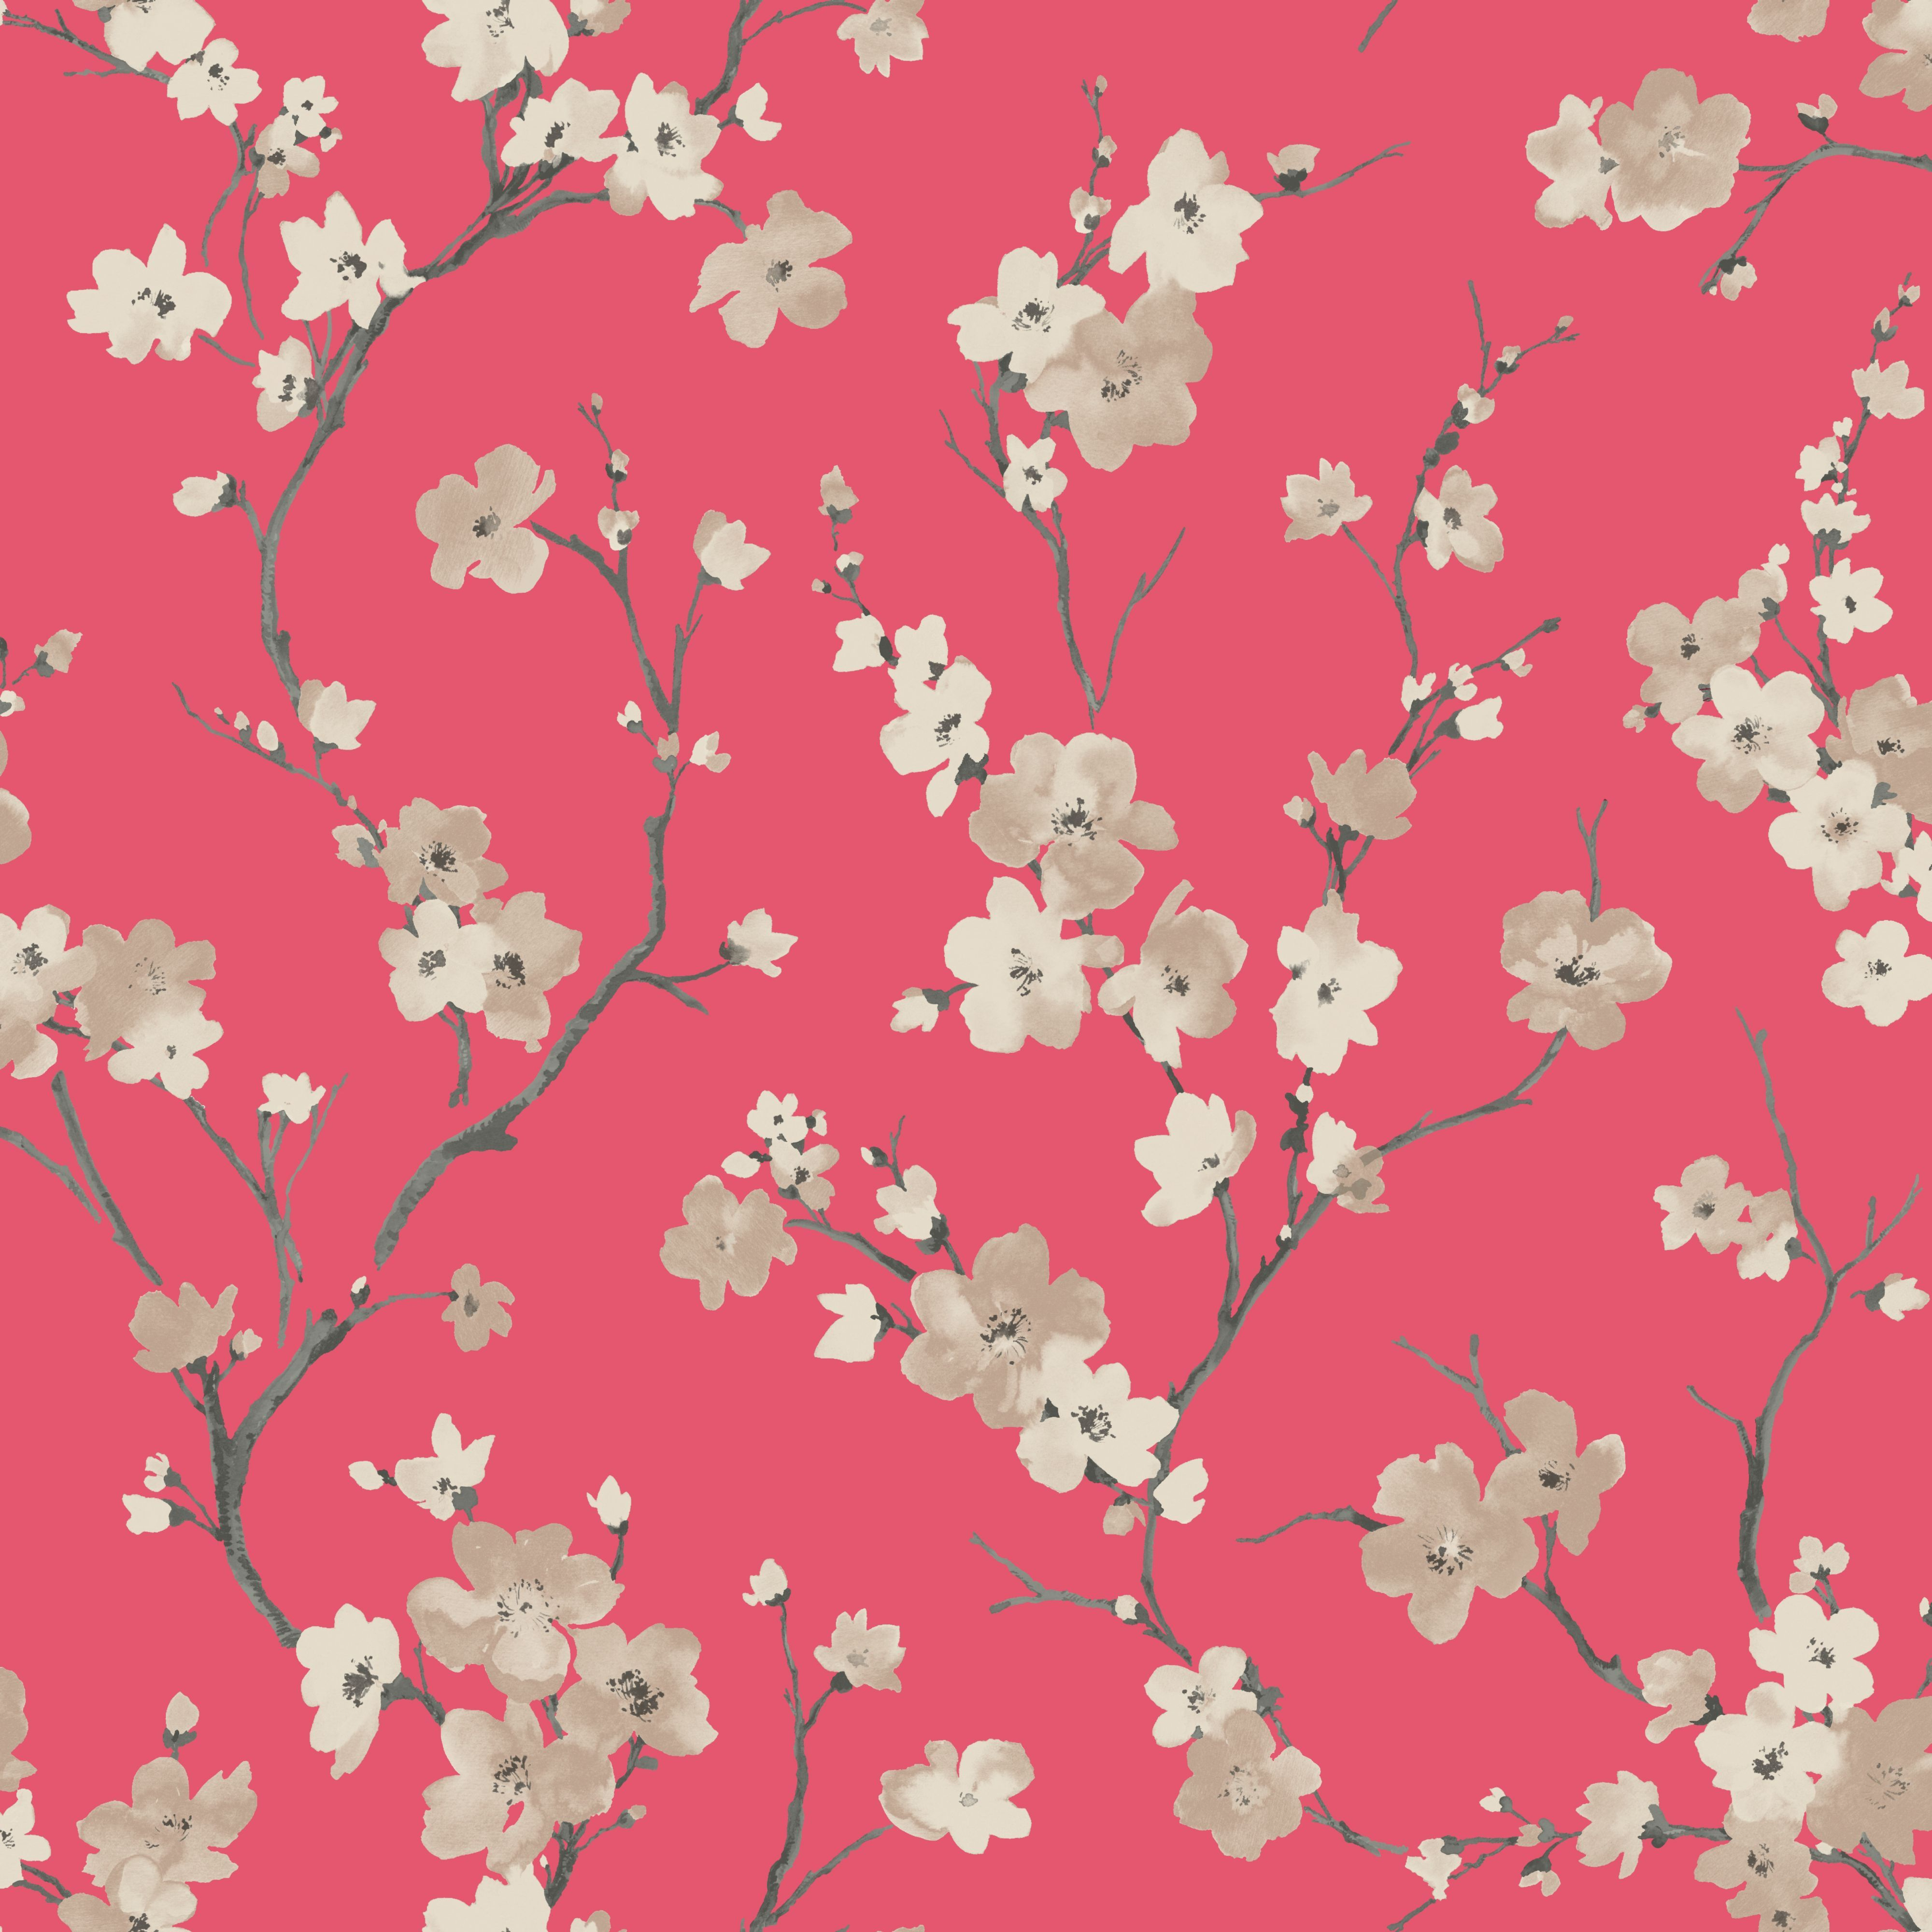 Red Wallpaper Designs For Living Room Blossom Soft Red Wallpaper Departments Diy At Bq Wallpaper